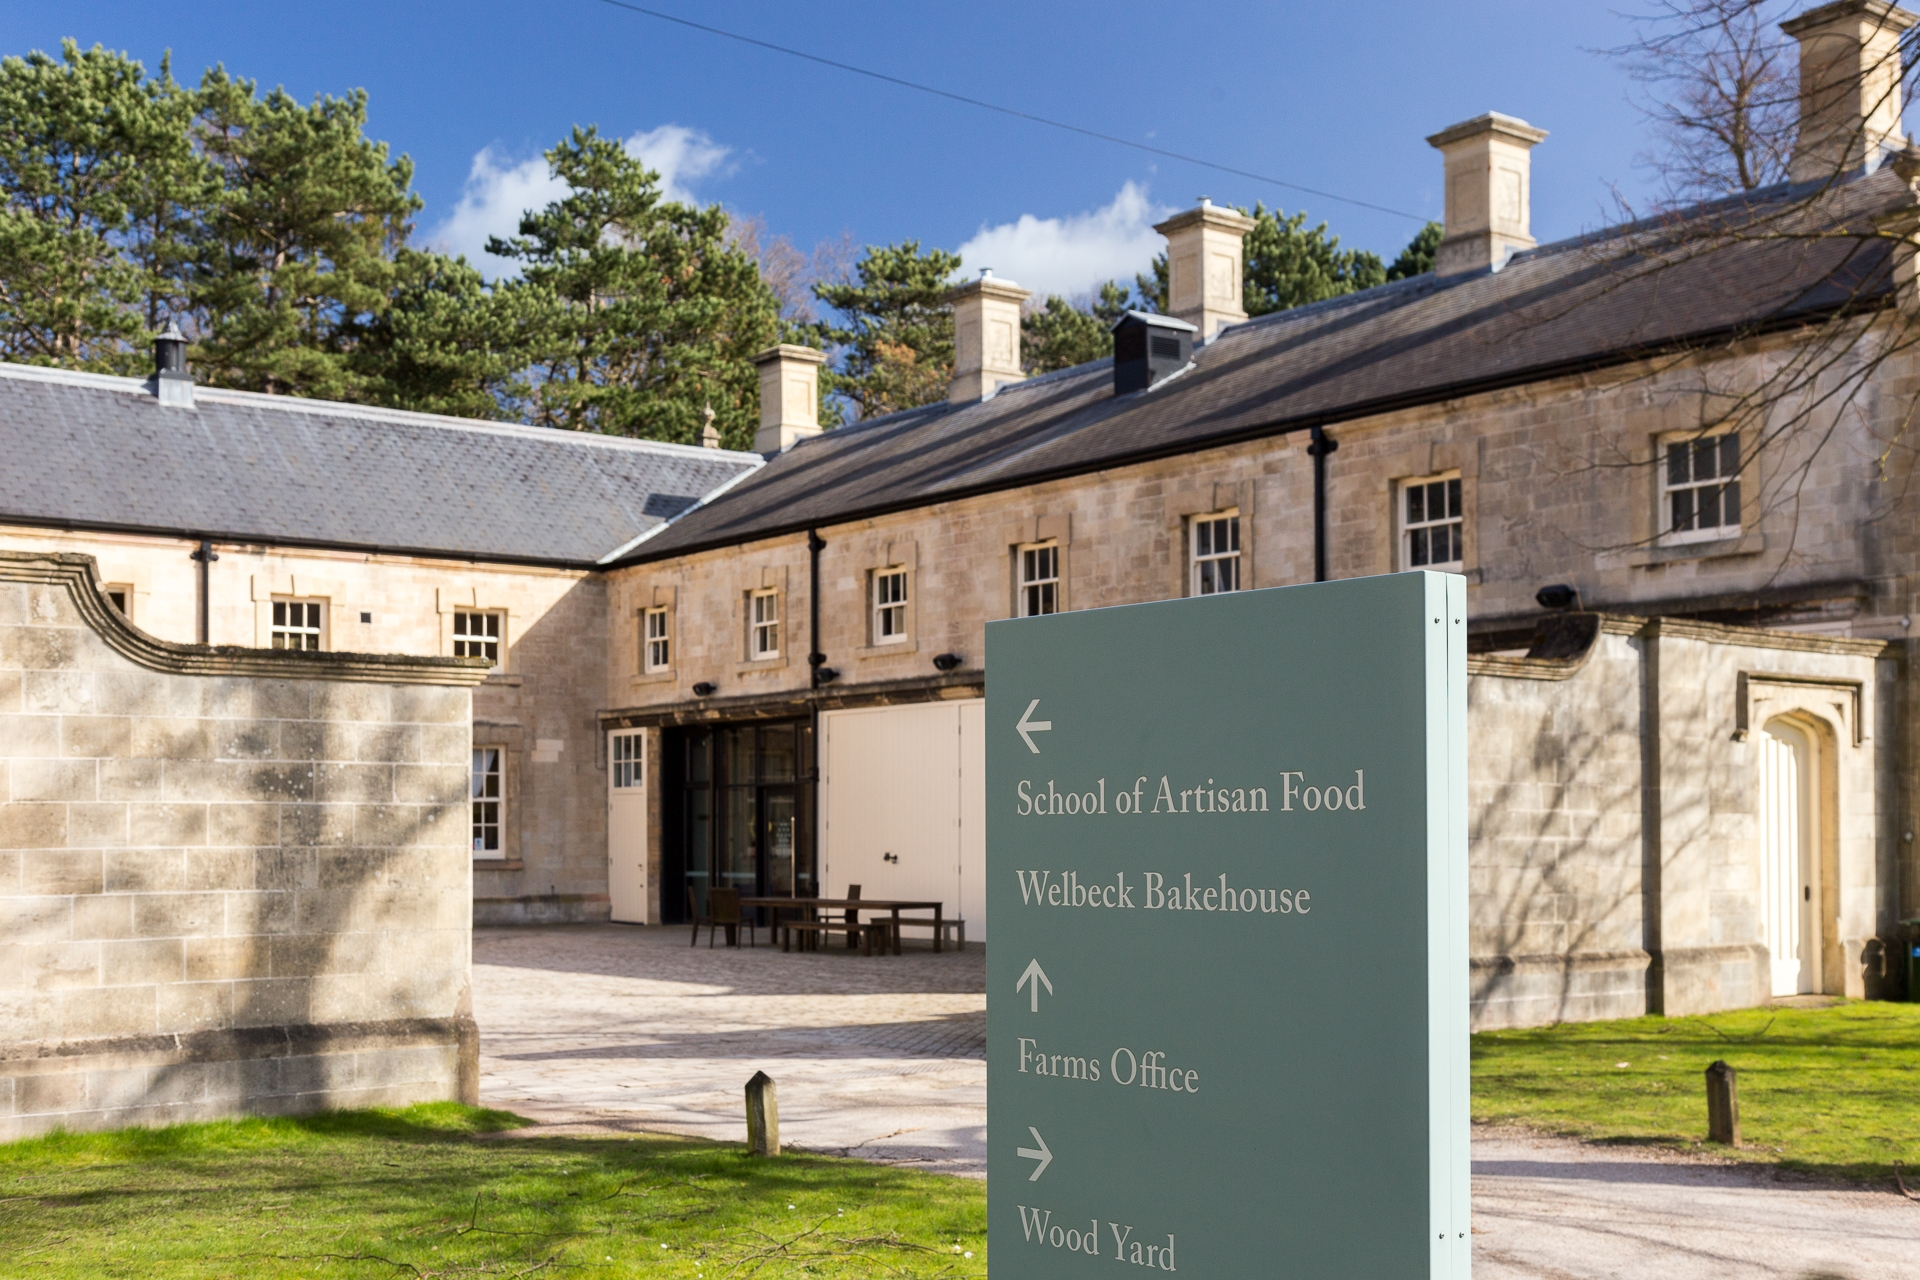 THE SCHOOL OF ARTISAN FOOD MAKES RURAL OSCAR SHORTLIST